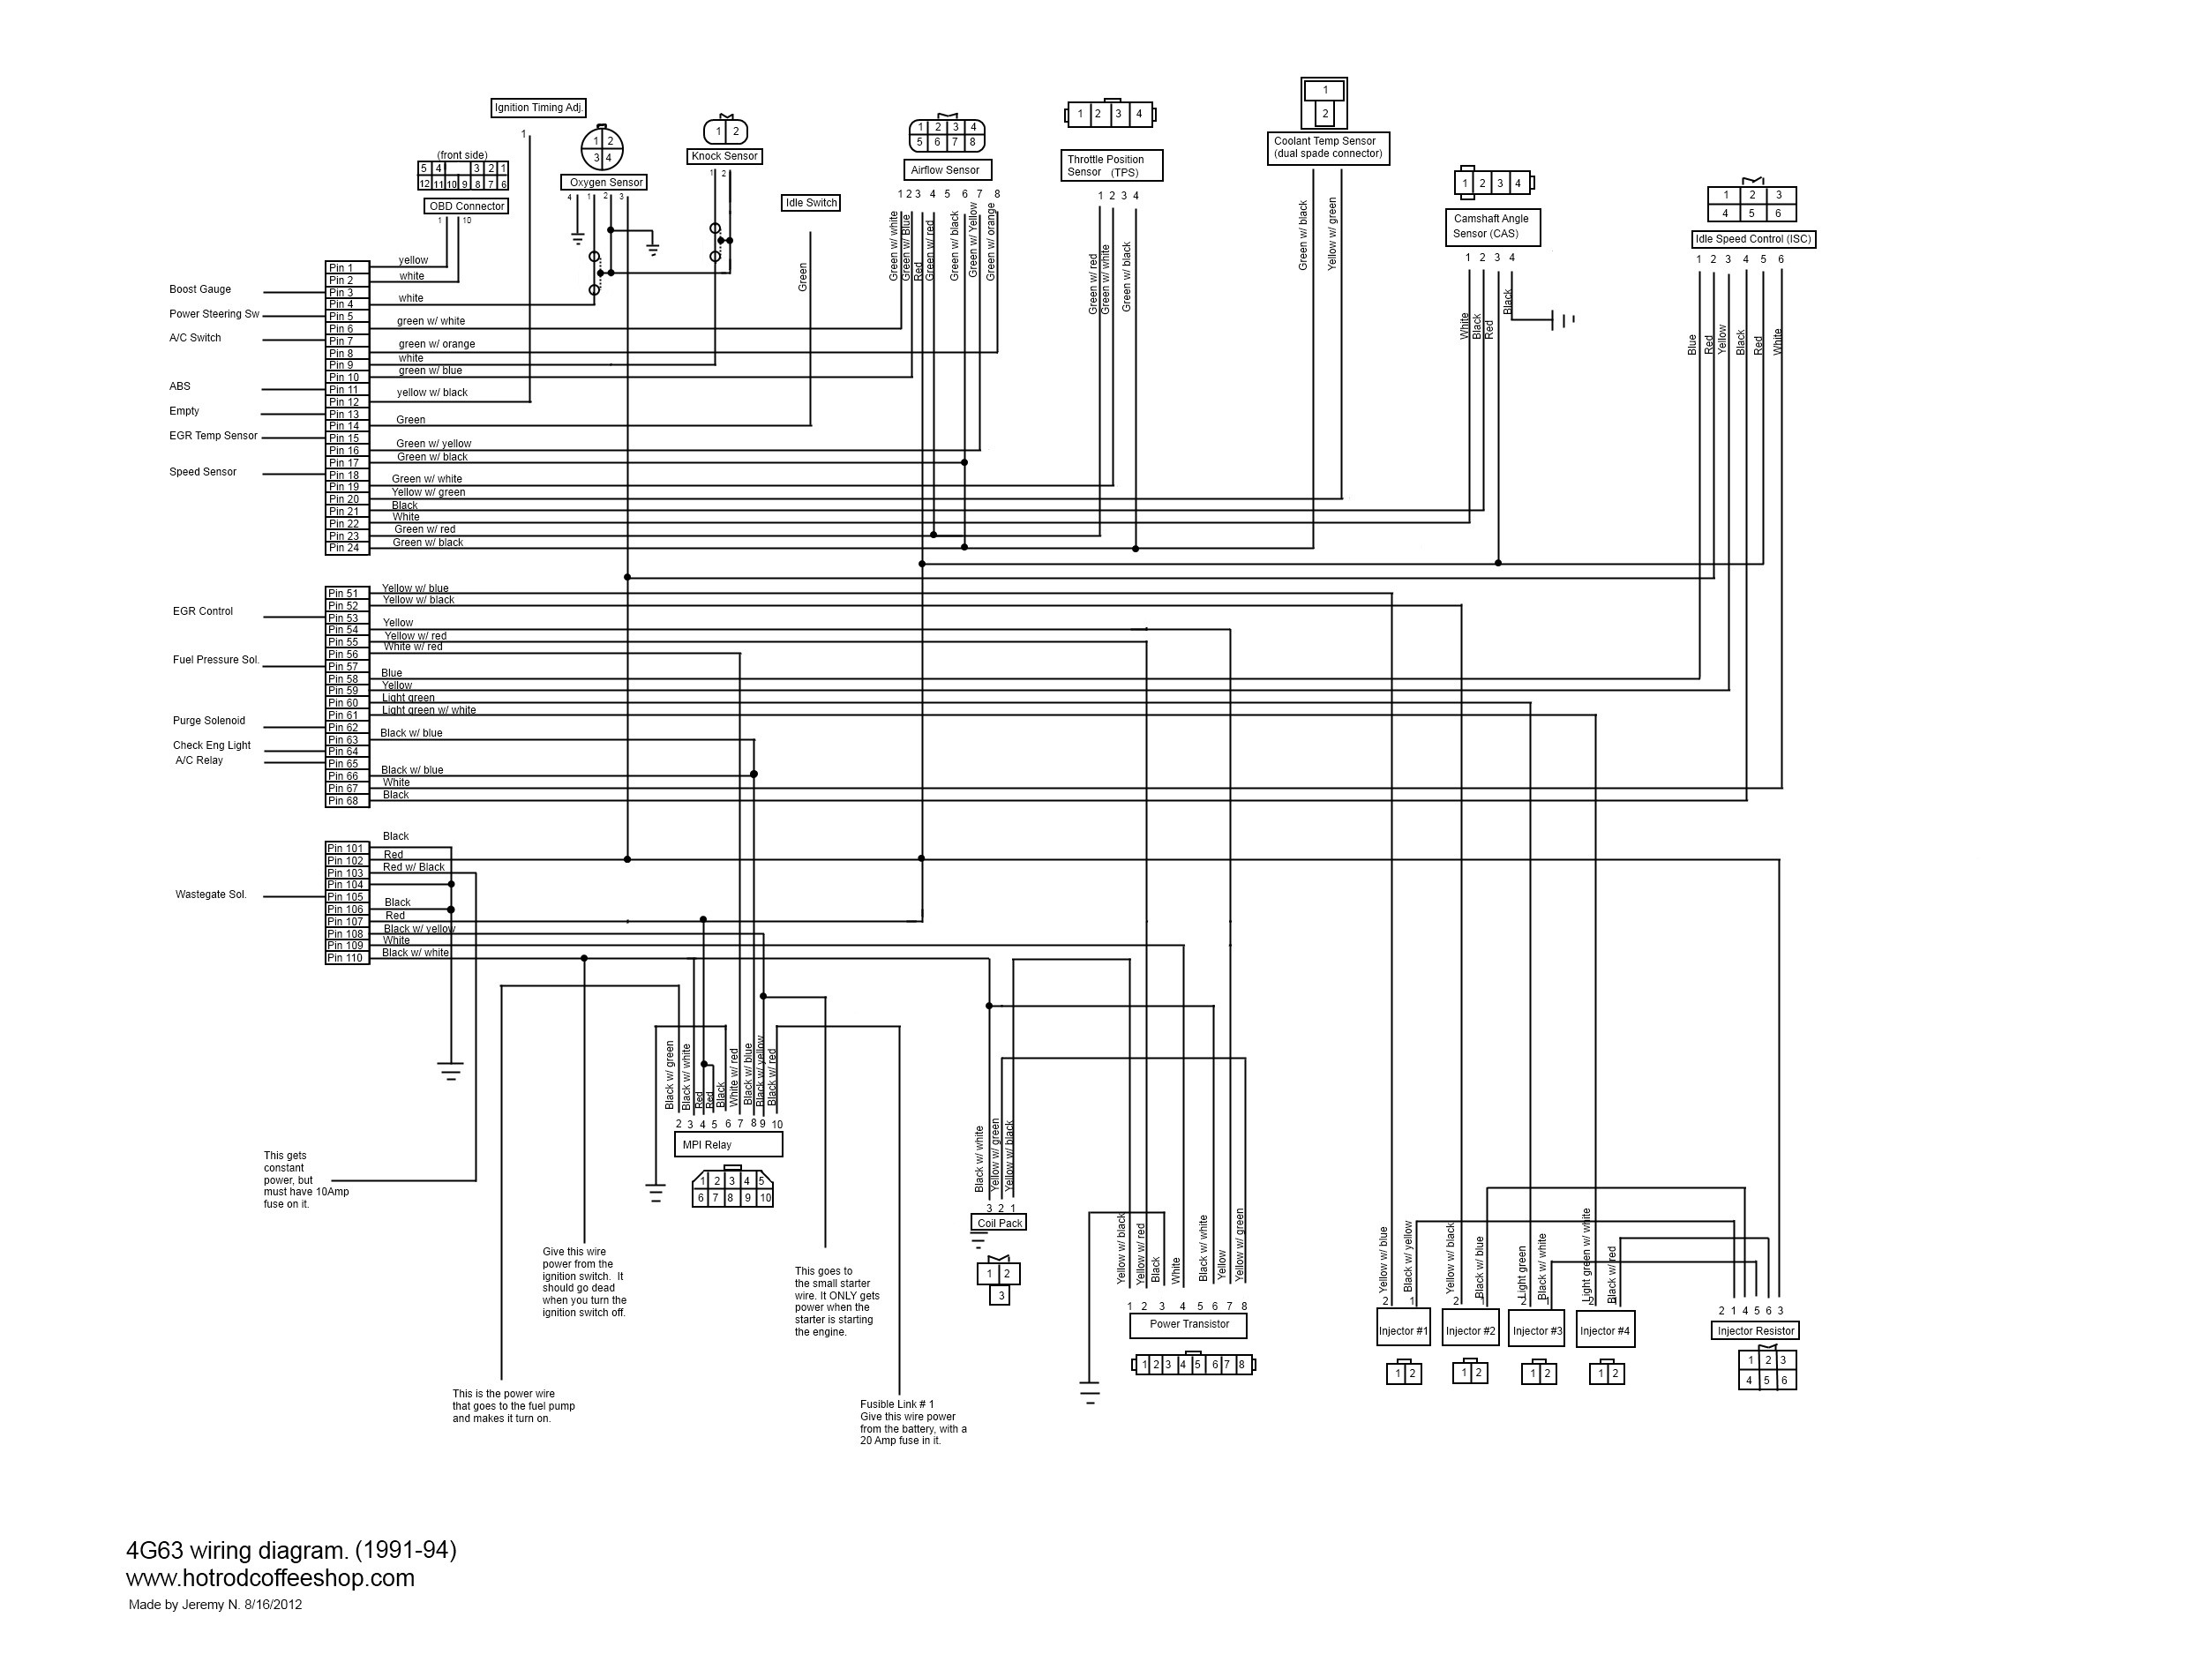 mitsubishi lancer wiring diagram 1992 - data wiring diagram few-agree-a -  few-agree-a.vivarelliauto.it  vivarelliauto.it